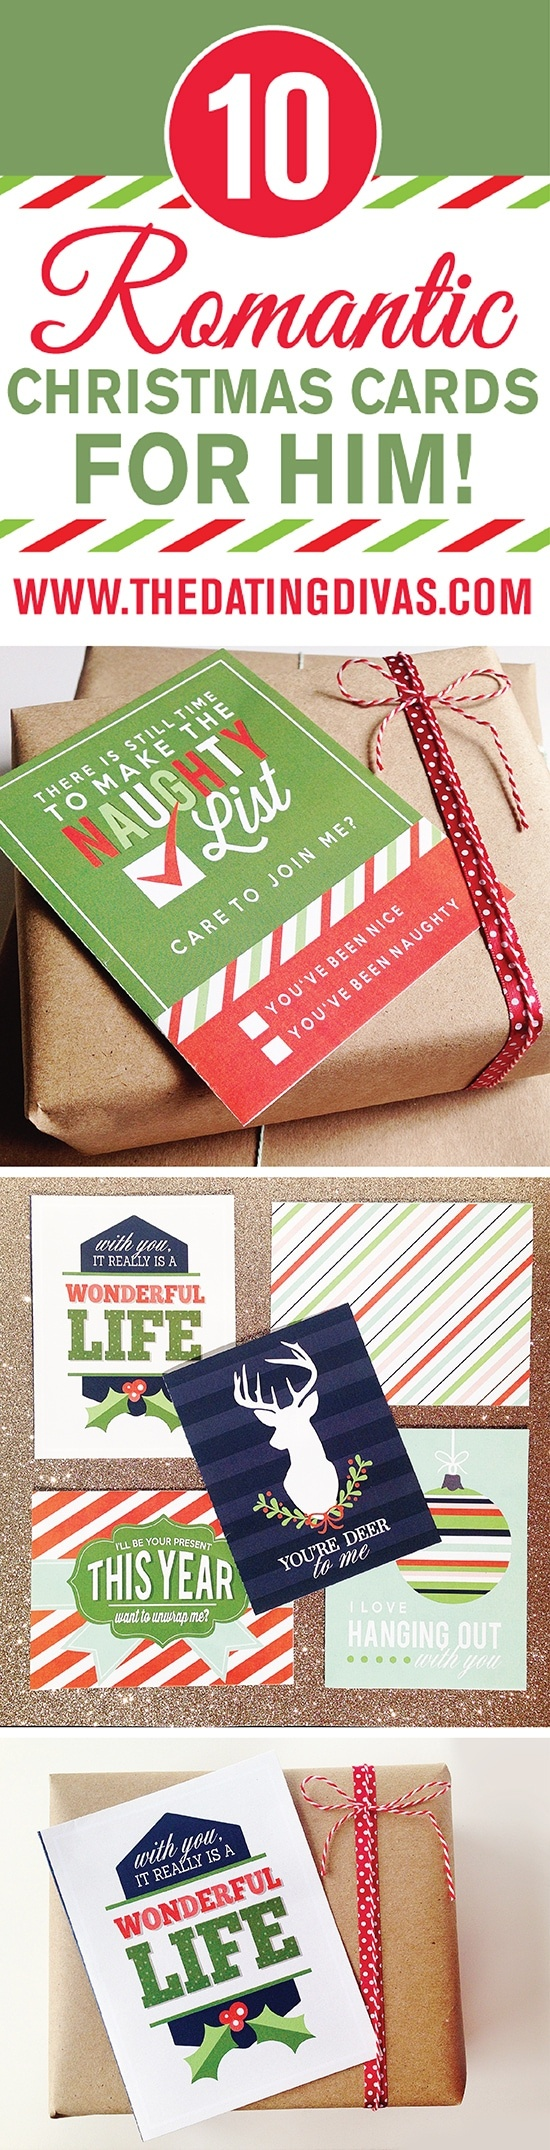 Romantic Christmas Cards For Him - Free Printable Romantic Christmas Cards